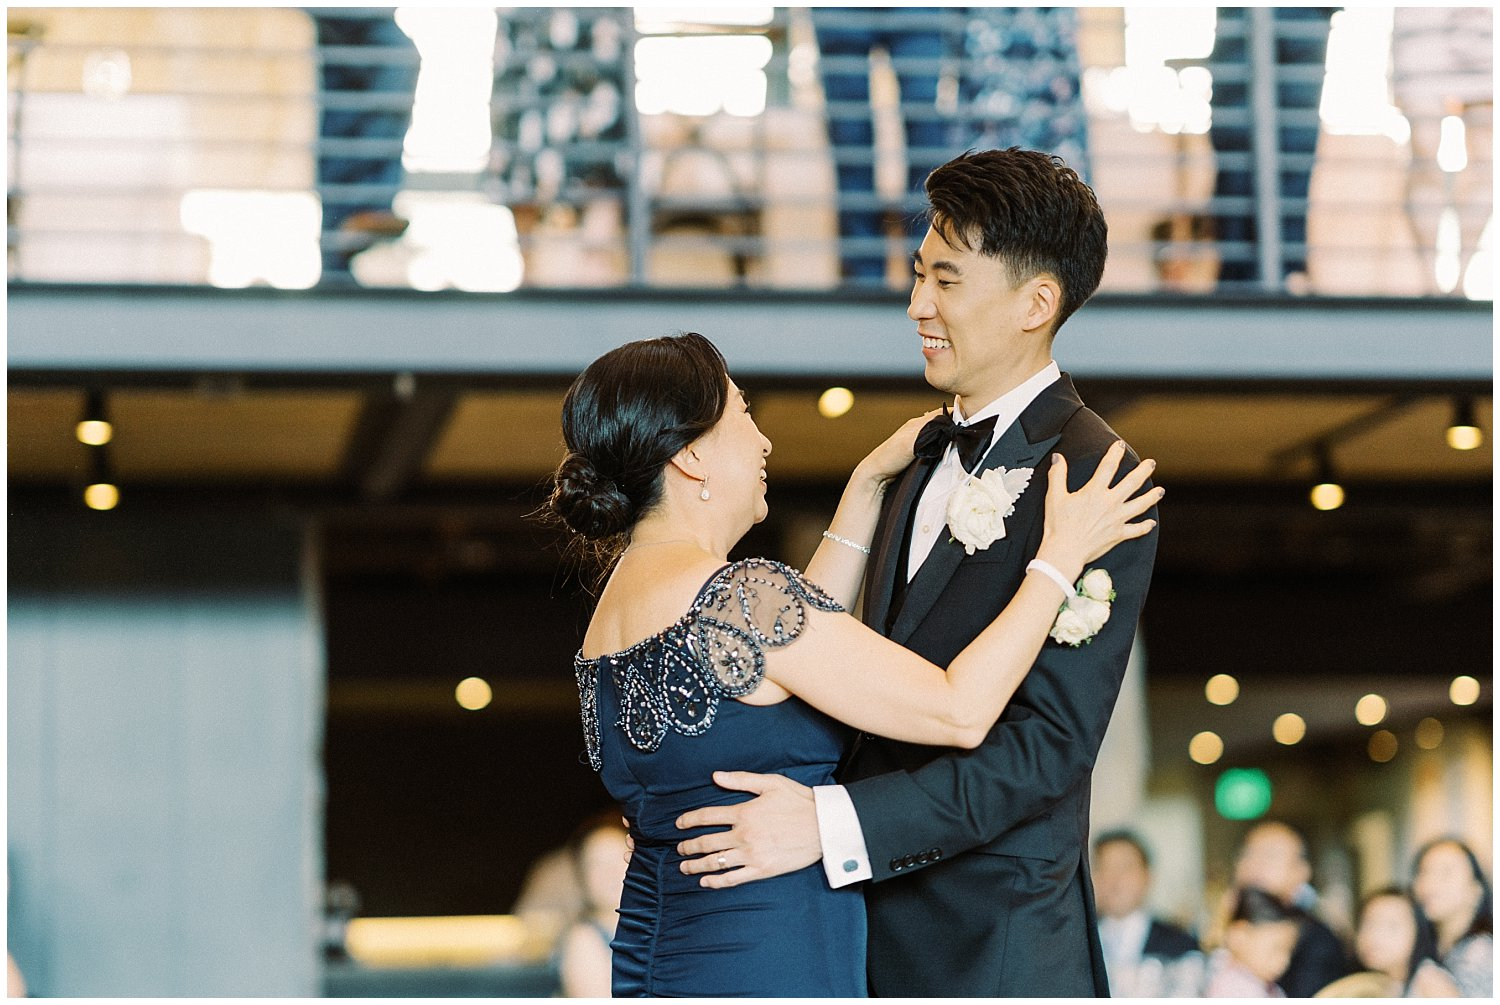 Baltimore Wedding at Winslow Room, Parker Metal Building by Winnie Dora Photography